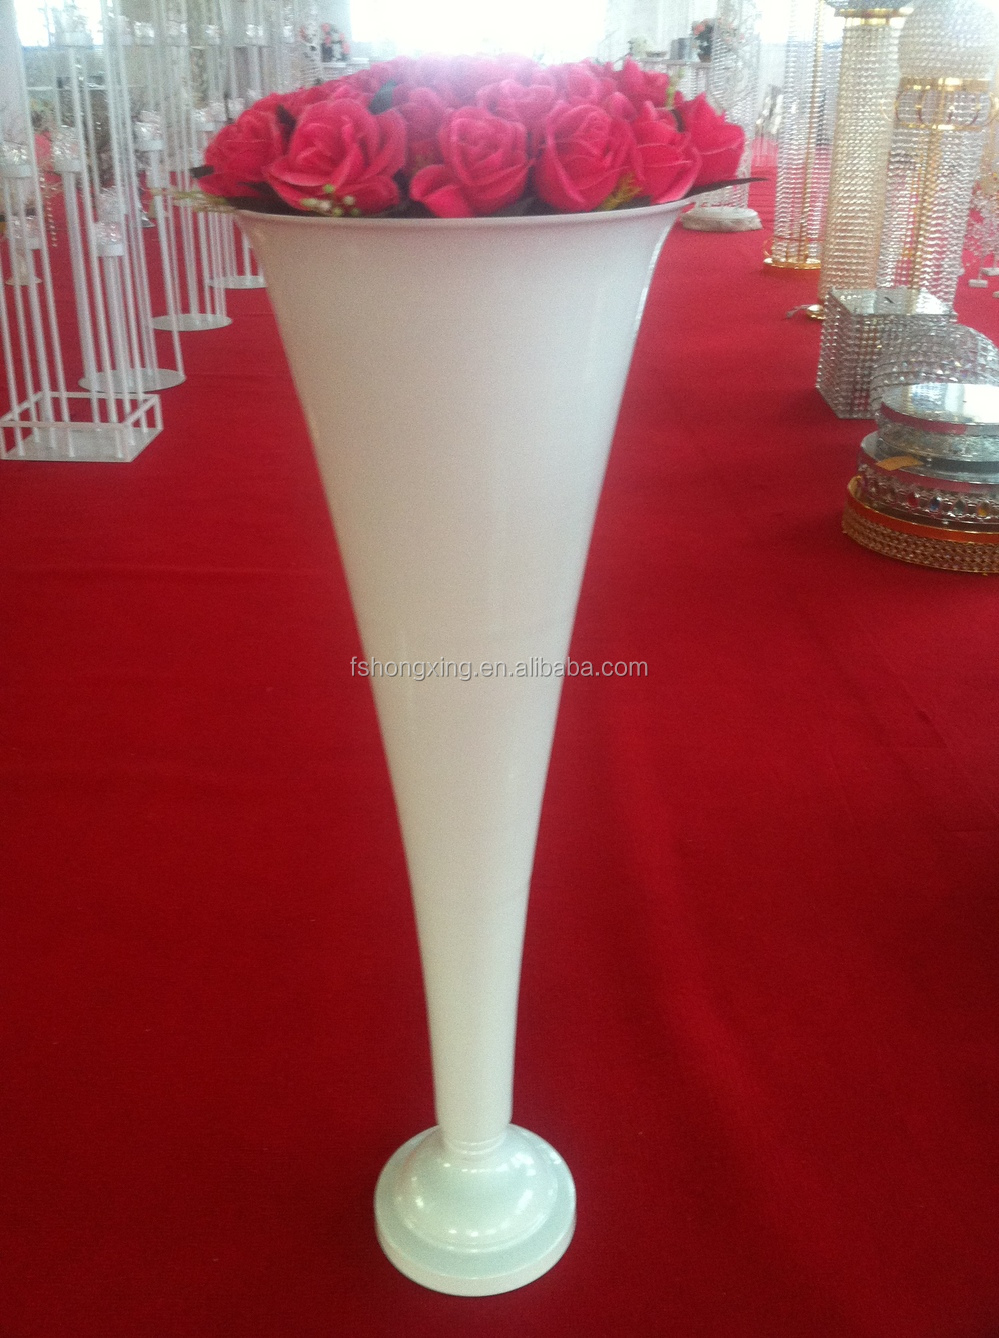 Crystal Tall Flower Stand Flower Vase Roman Pillar For Wedding Table Decortion Buy Crystal